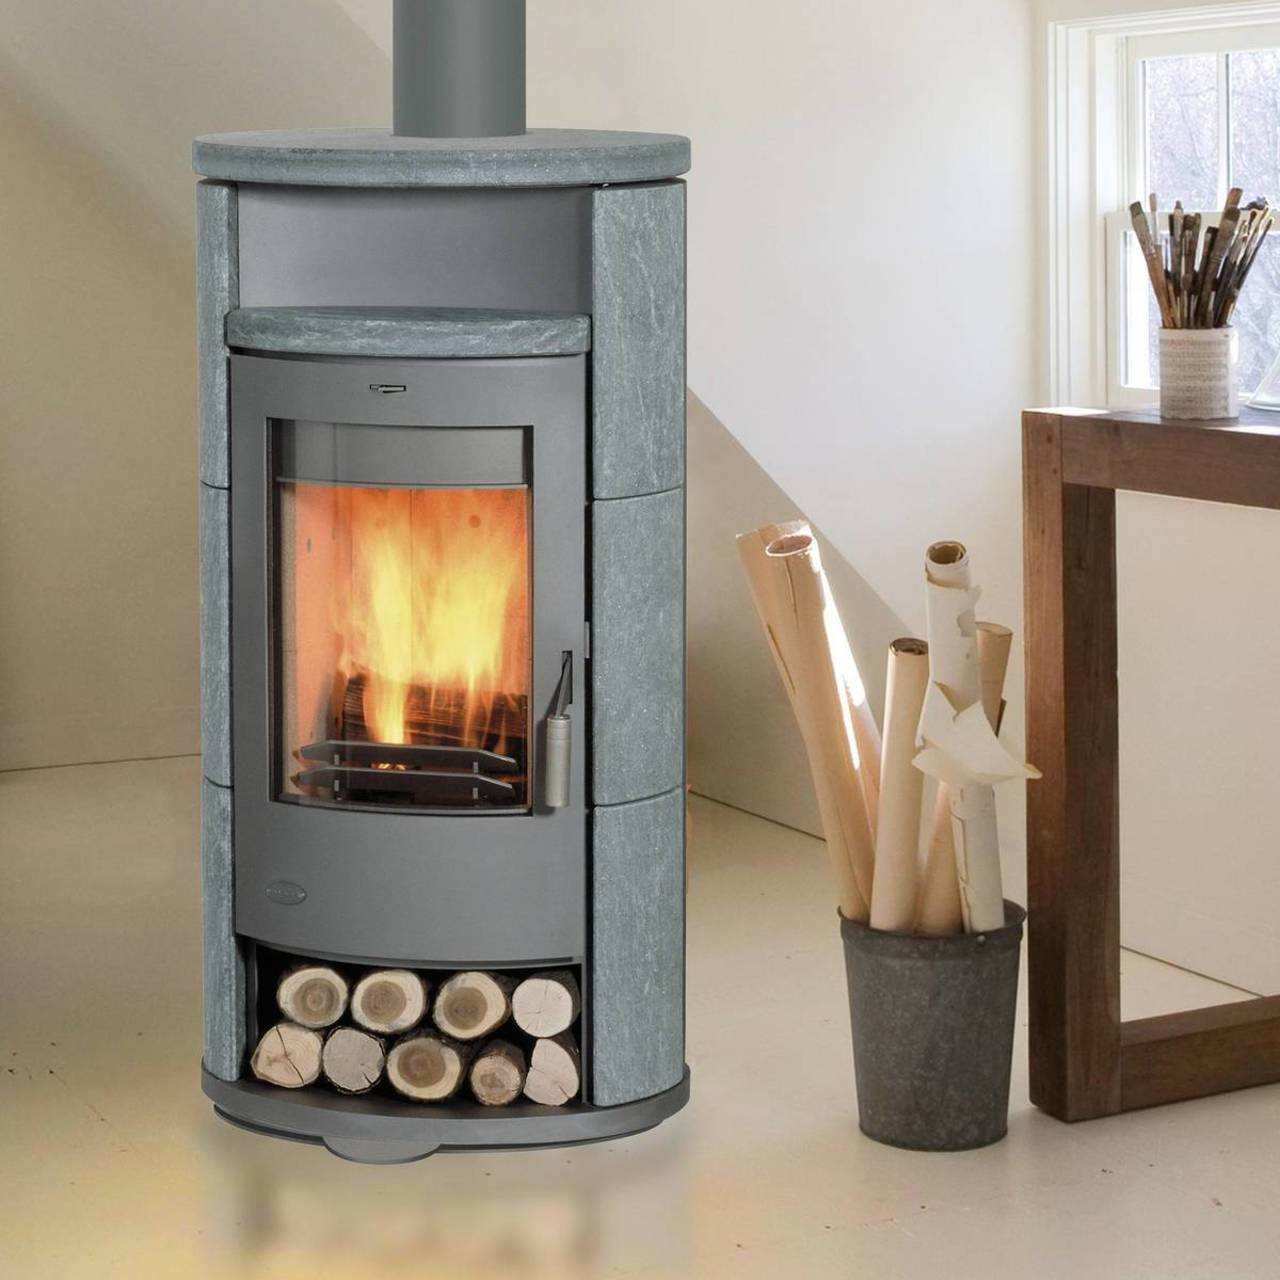 fireplace kaminofen drehbar alicante speckstein 8 kw mit teefach ebay. Black Bedroom Furniture Sets. Home Design Ideas